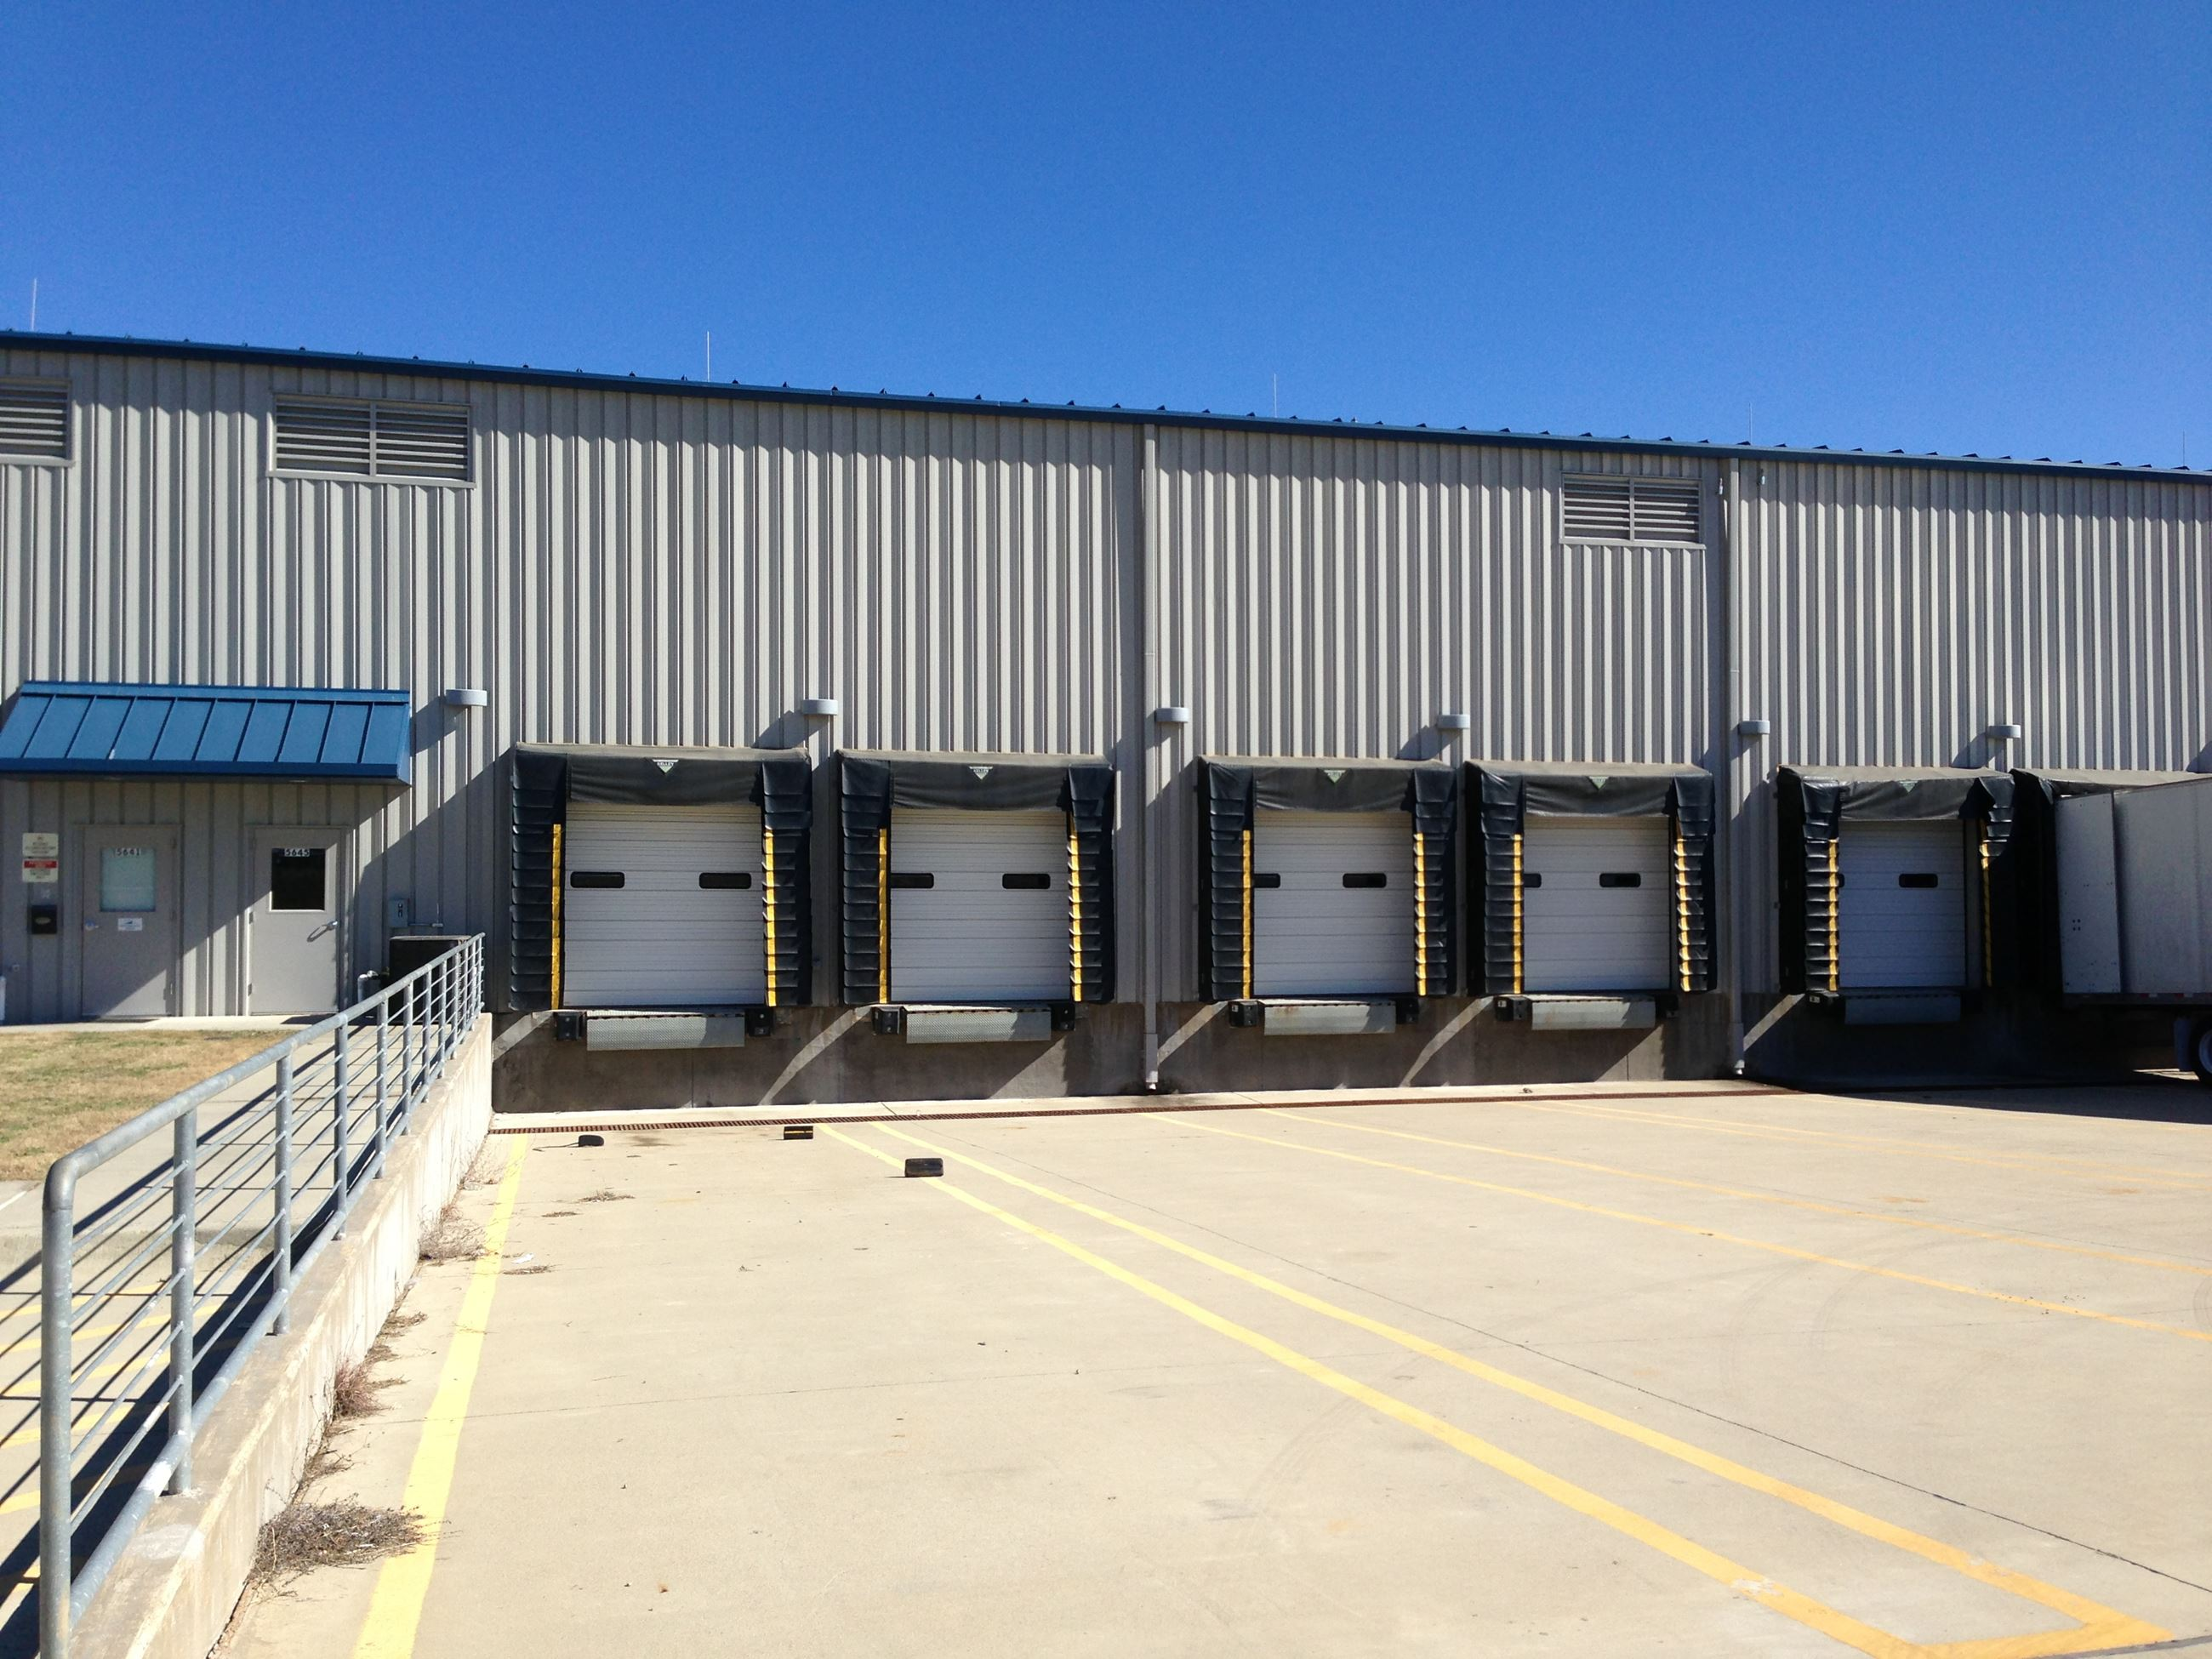 West Cargo Loading Docks - Copy